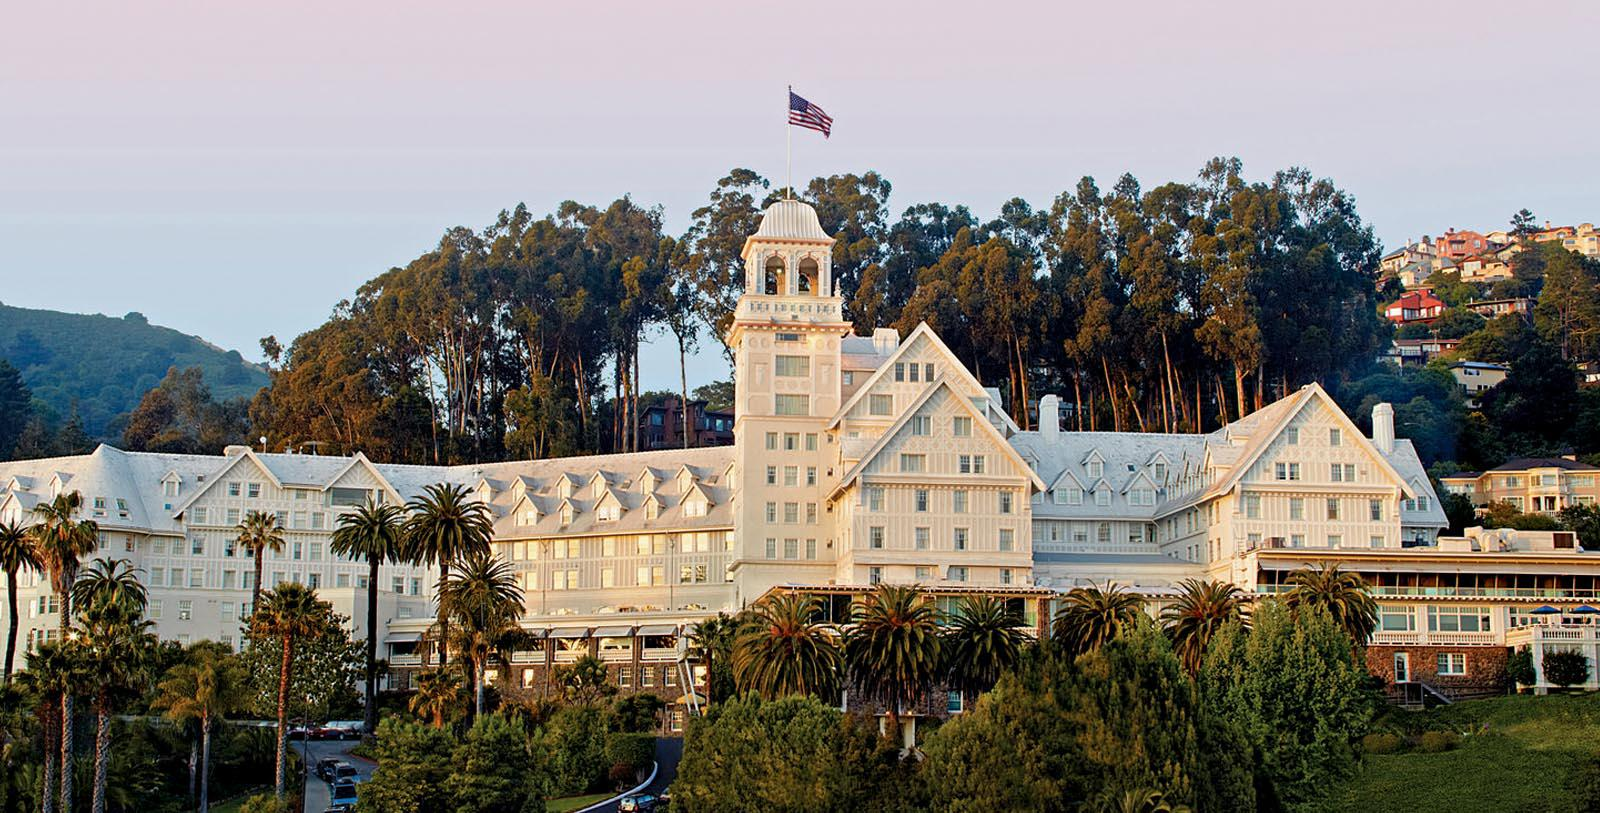 Image of Hotel exterior at Claremont Club & Spa, 1915, A Fairmont Hotel, Member of Historic Hotels of America, in Berkeley, California, Special Offers, Discounted Rates, Families, Romantic Escape, Honeymoons, Anniversaries, Reunions